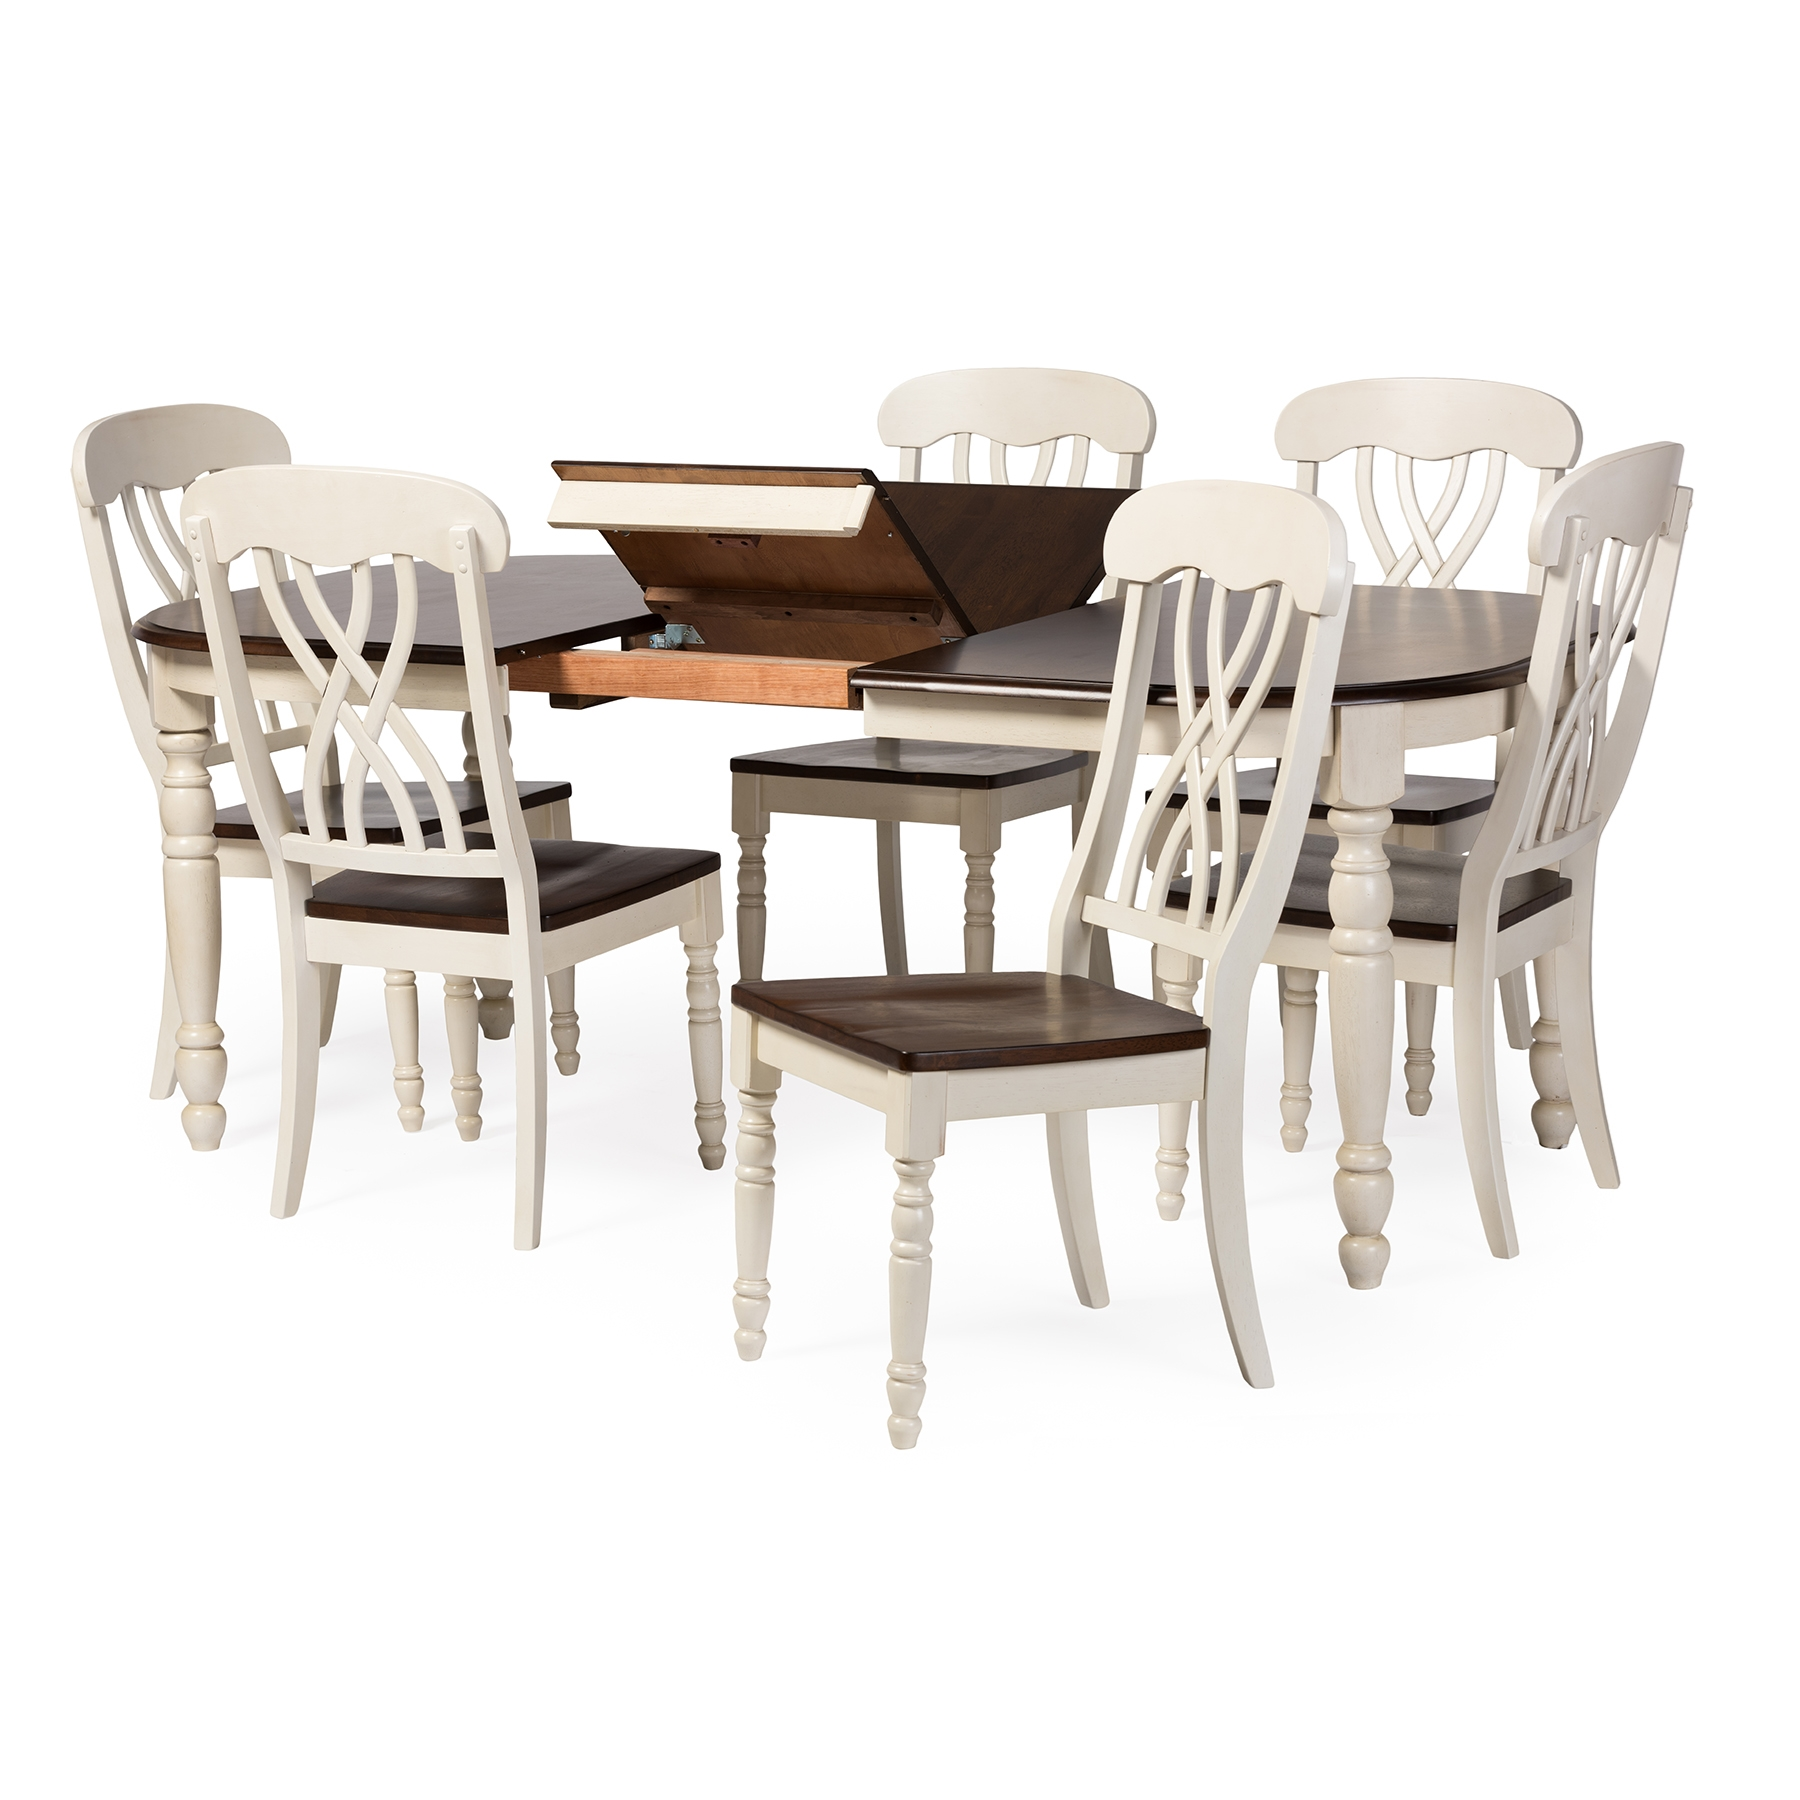 ... Baxton Studio Newman Chic Country Cottage Antique Oak Wood And  Distressed White 7 Piece Dining ...